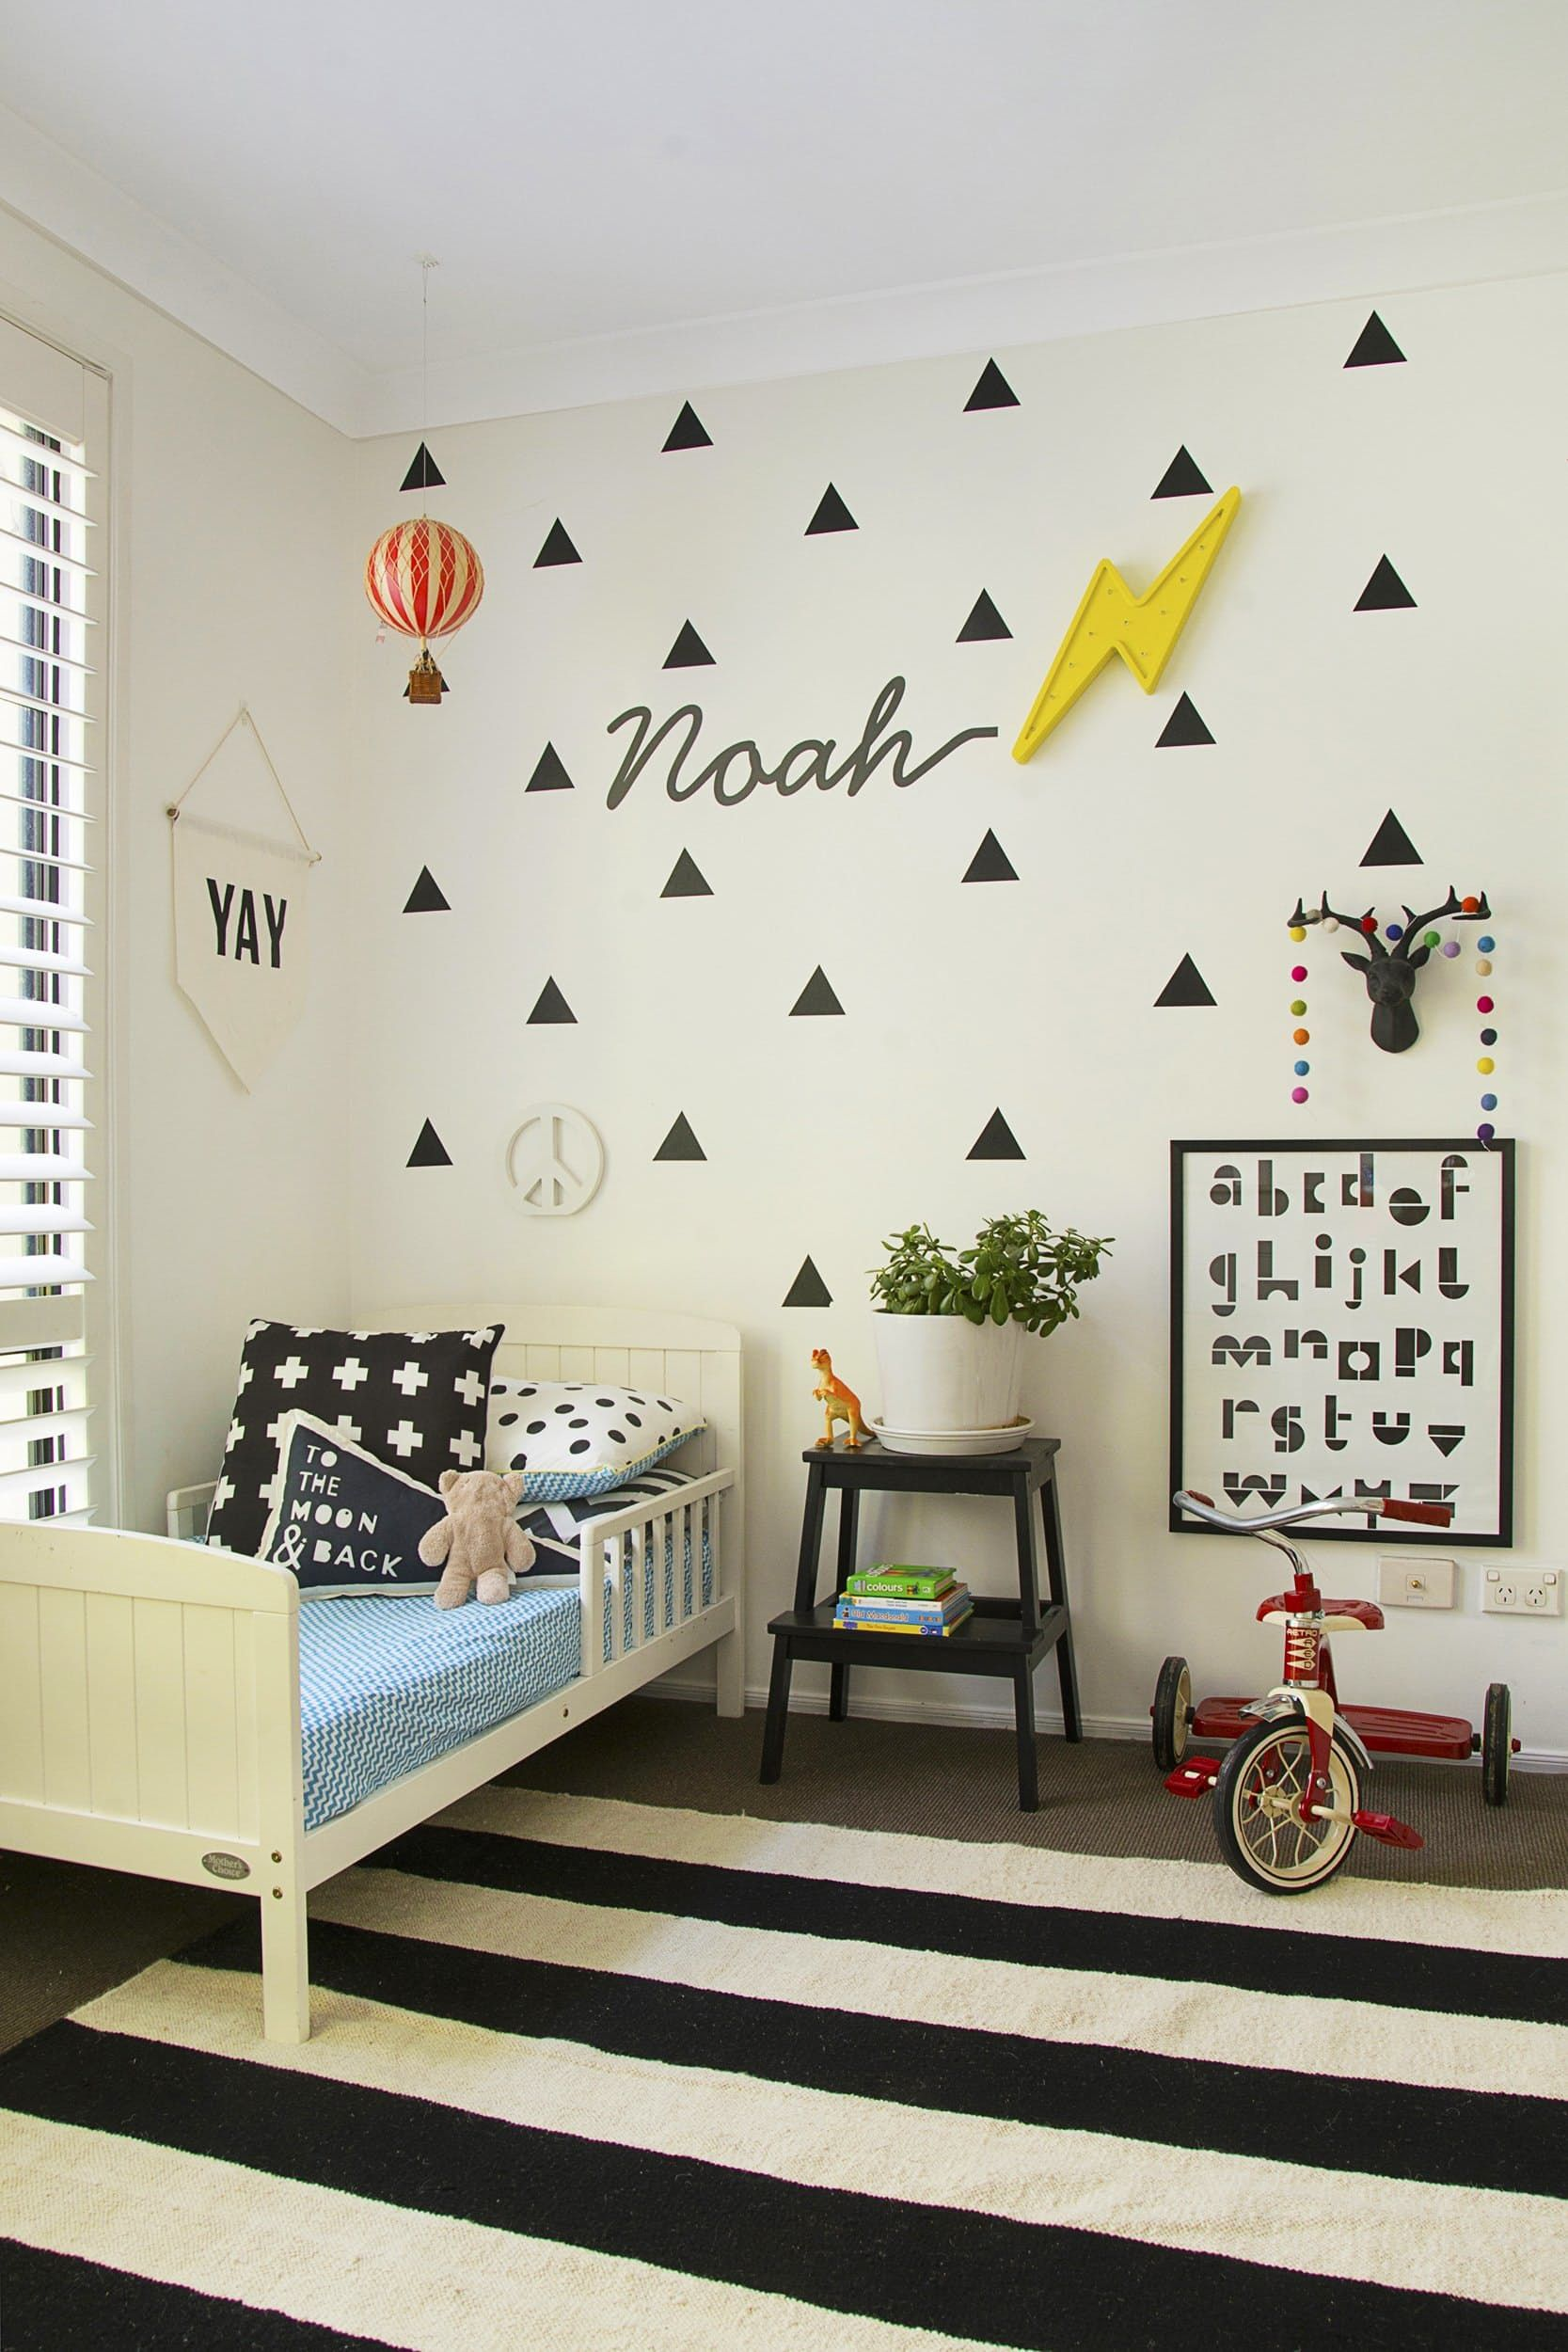 Noahs Graphic, Modern Abode Kids Room Tour